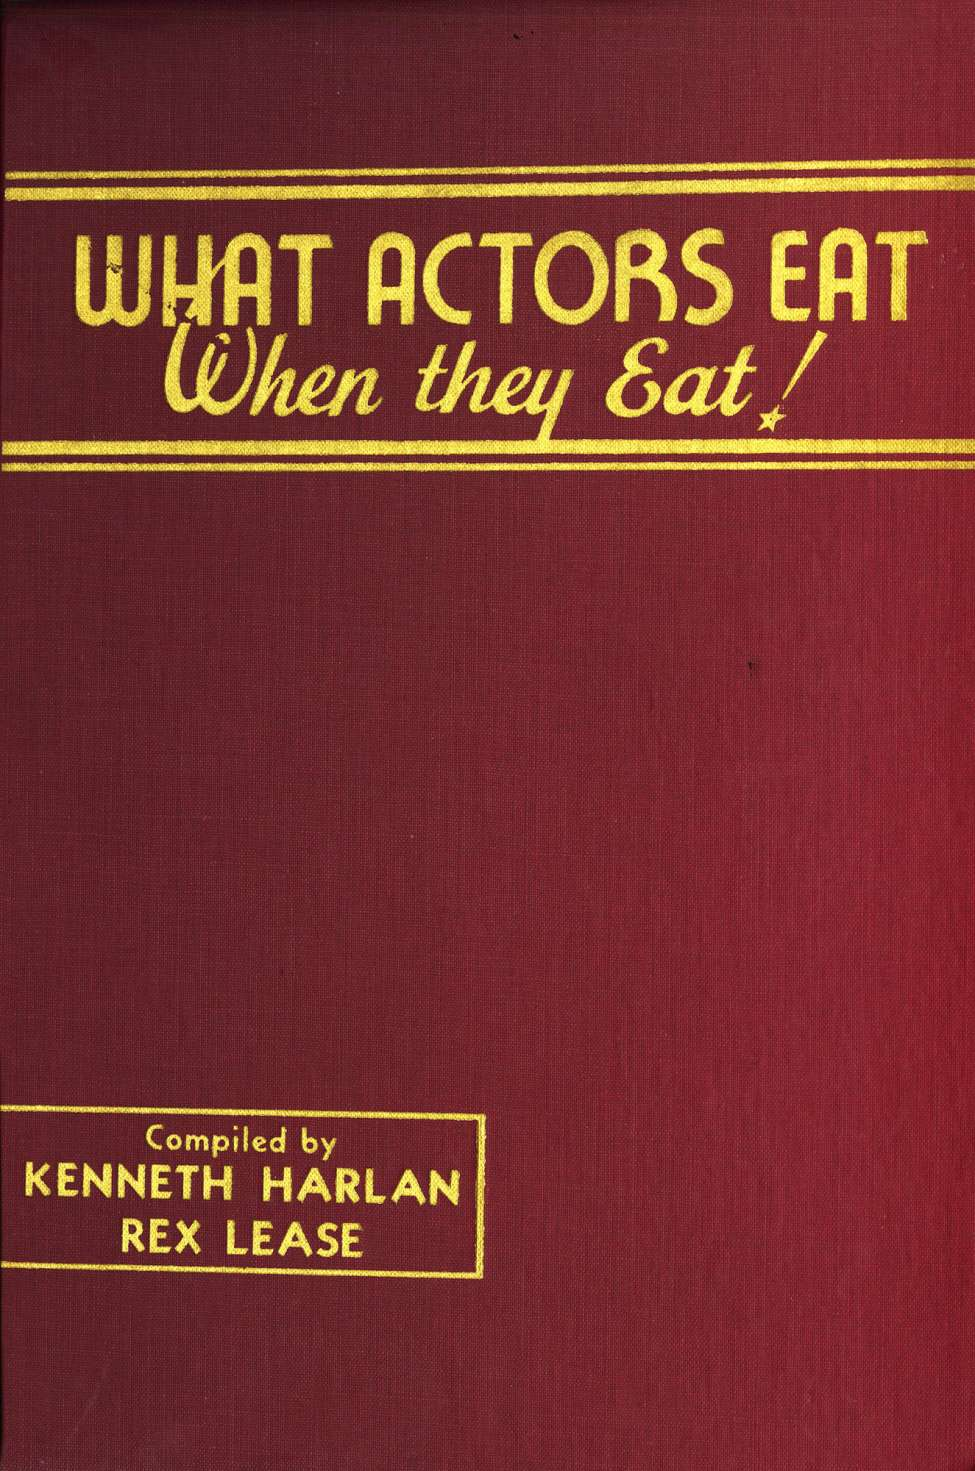 Comic Book Cover For What Actors Eat - When they Eat!